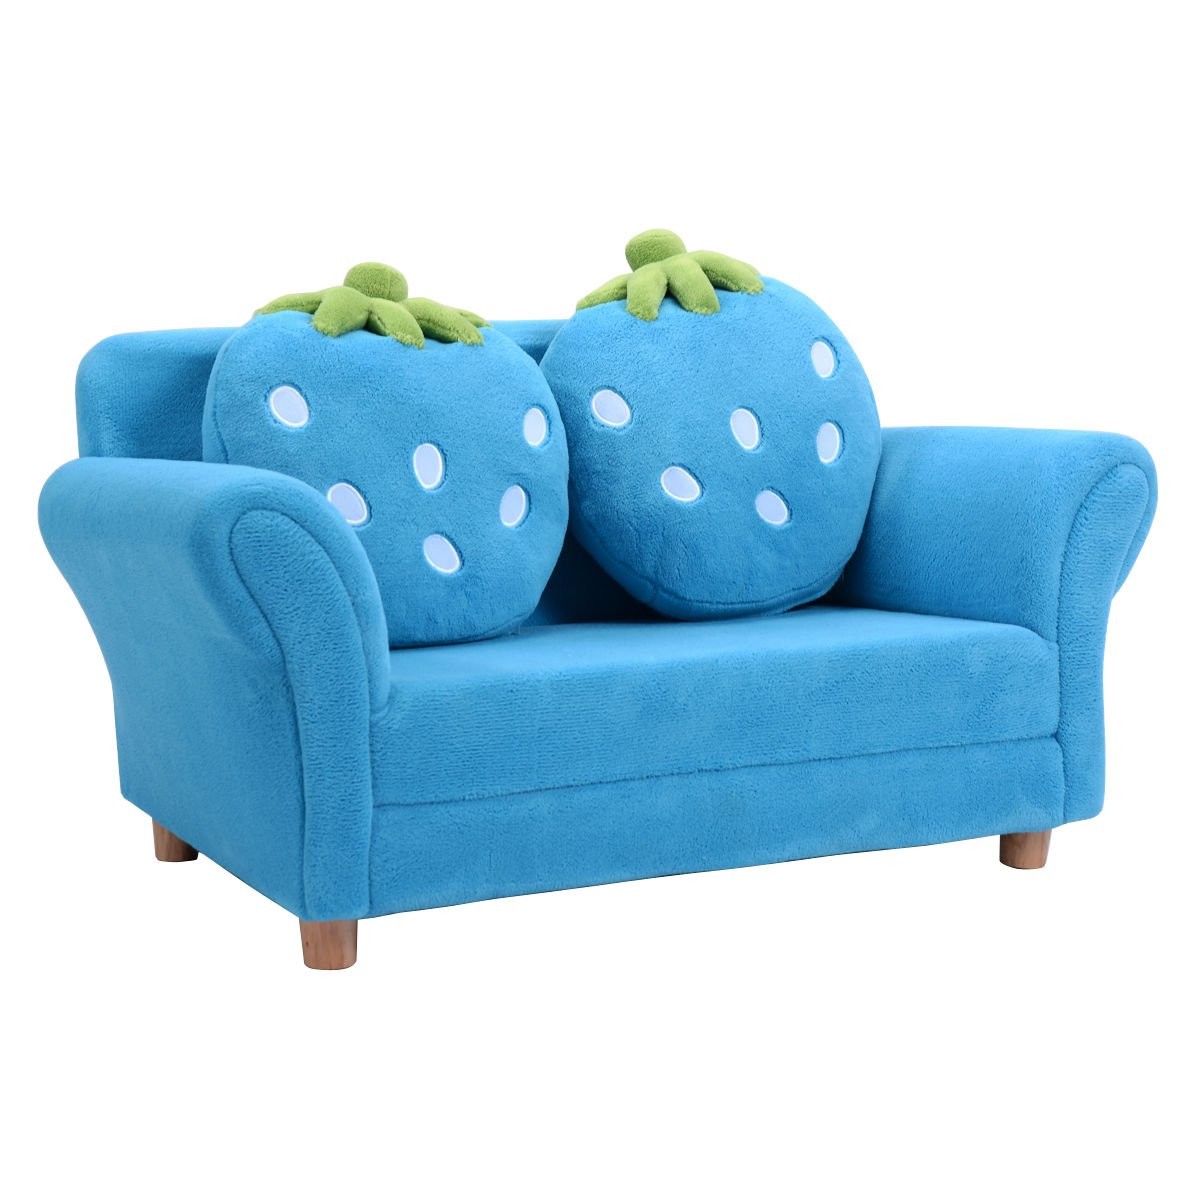 Couches For Kids